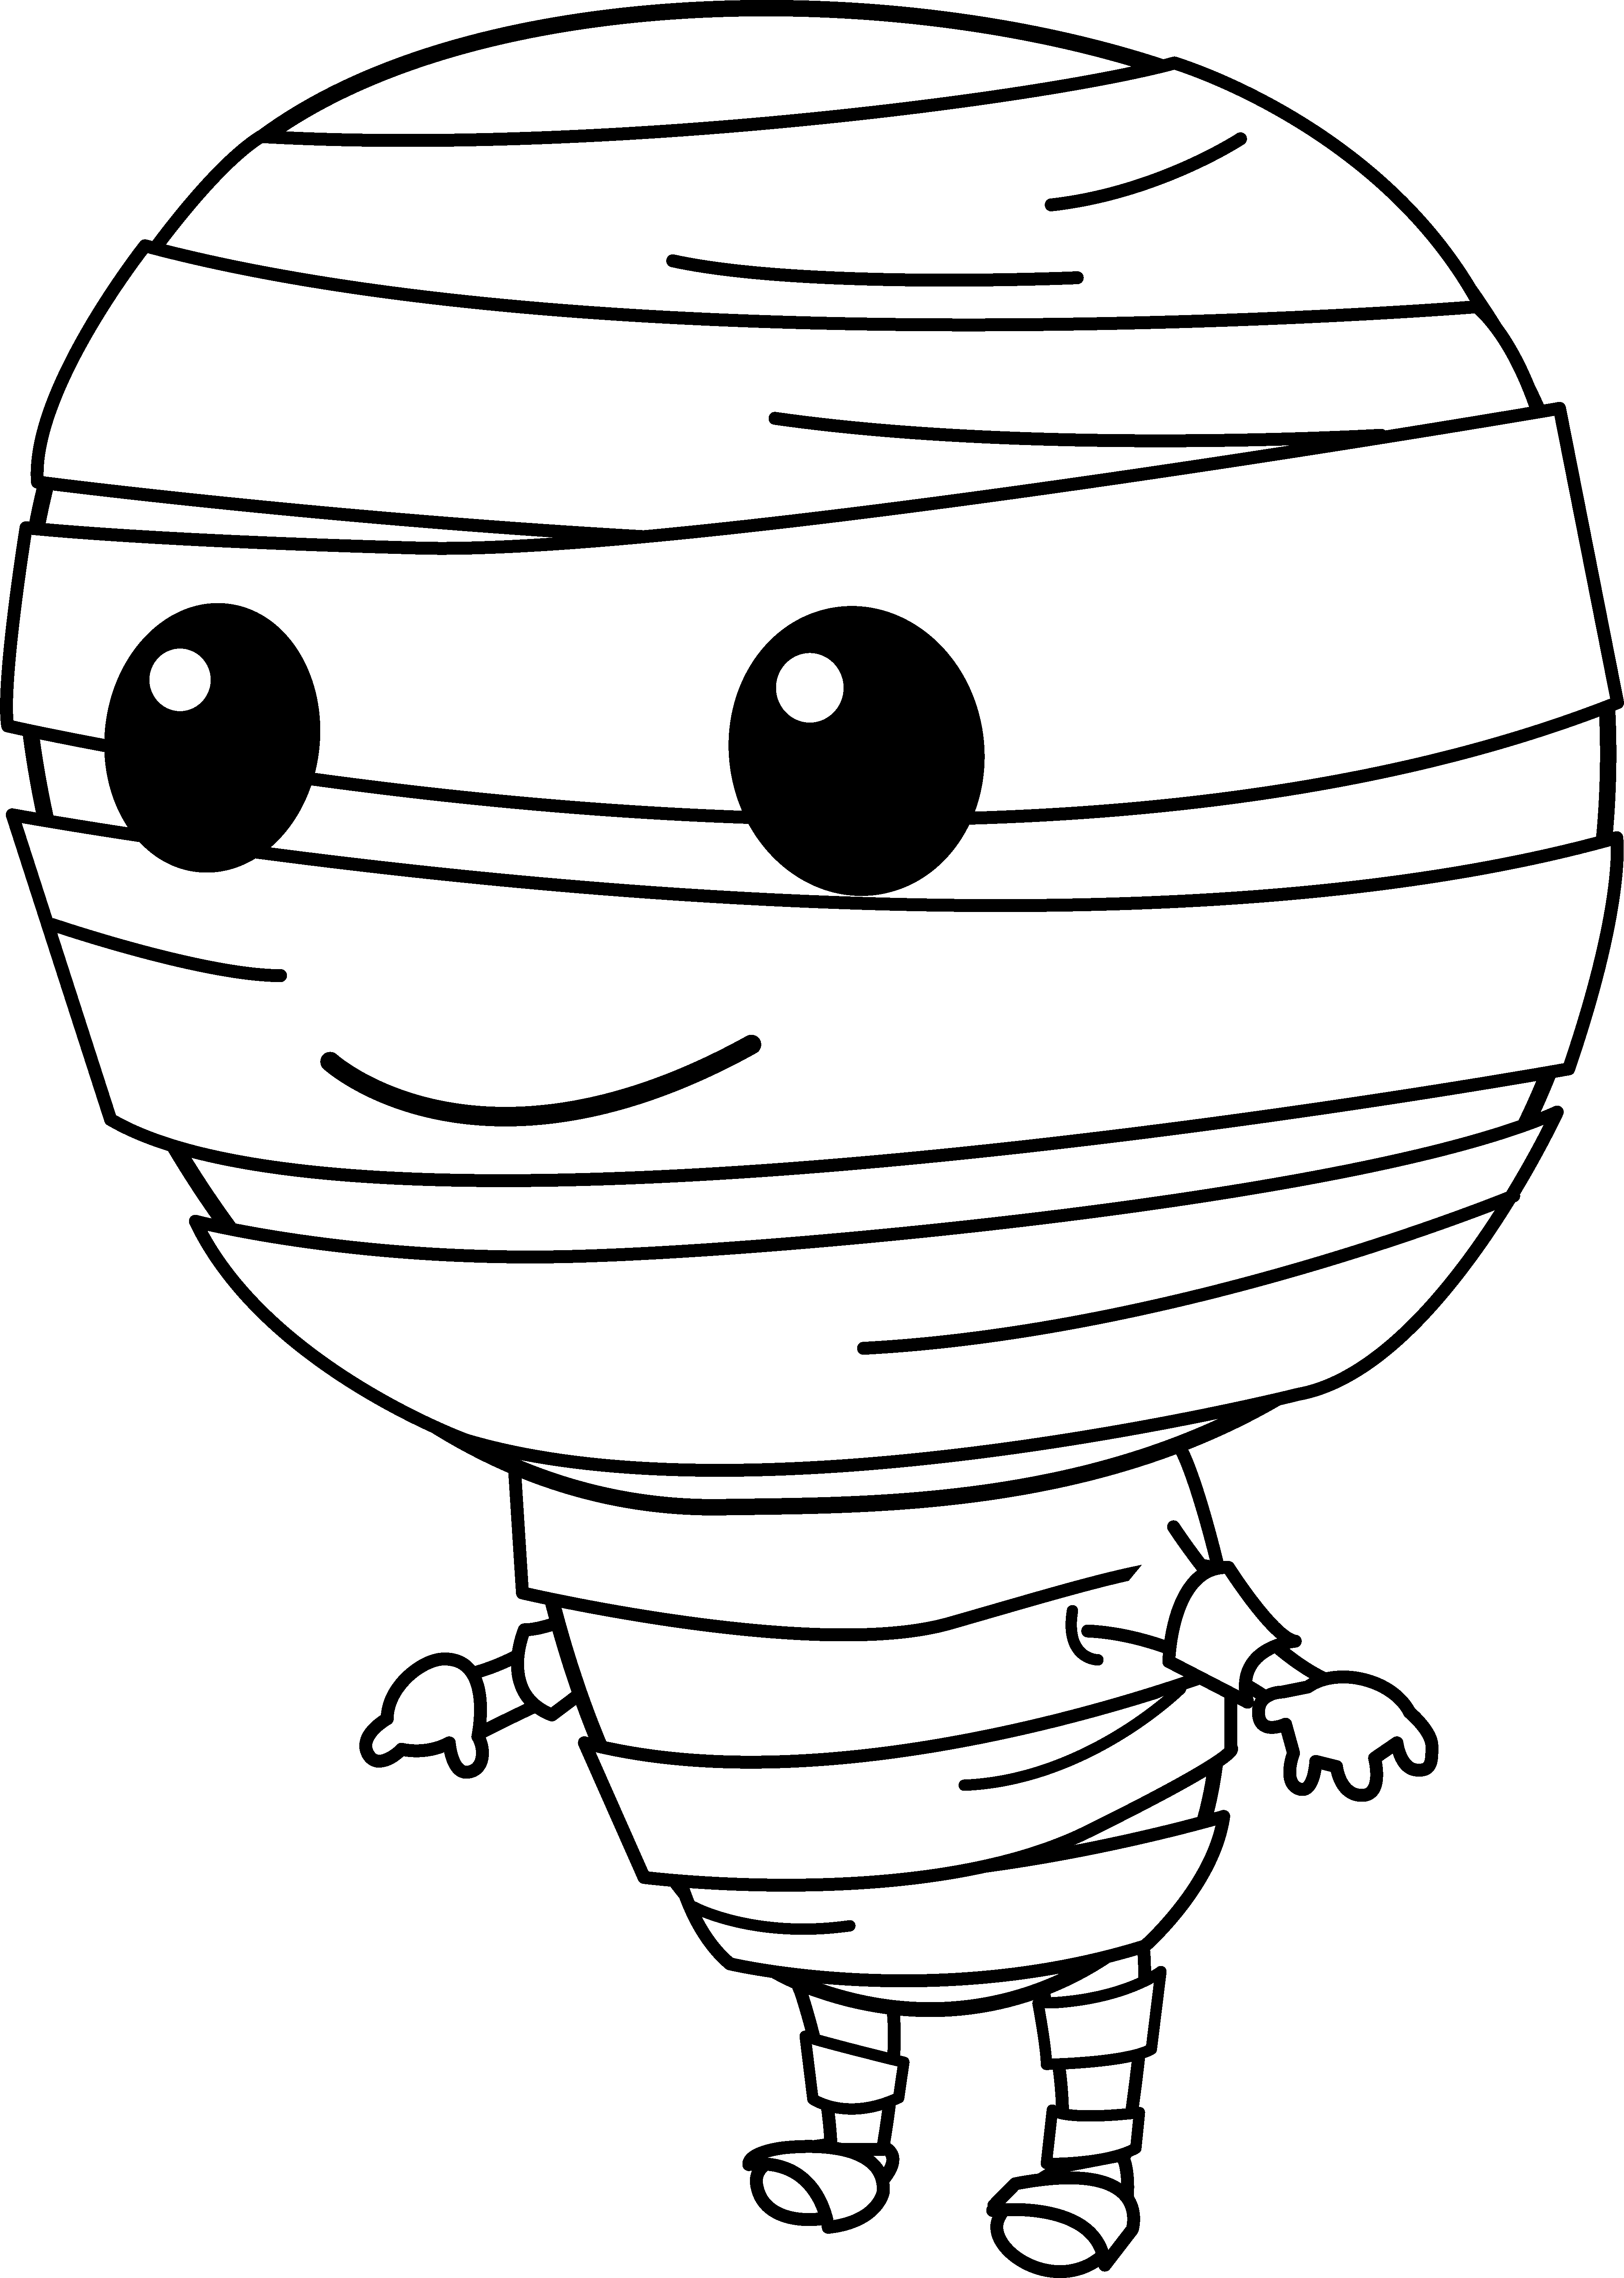 Cute mummy clipart graphic black and white library Cute Little Mummy Clip Art - Free Clip Art | Coloring page ... graphic black and white library